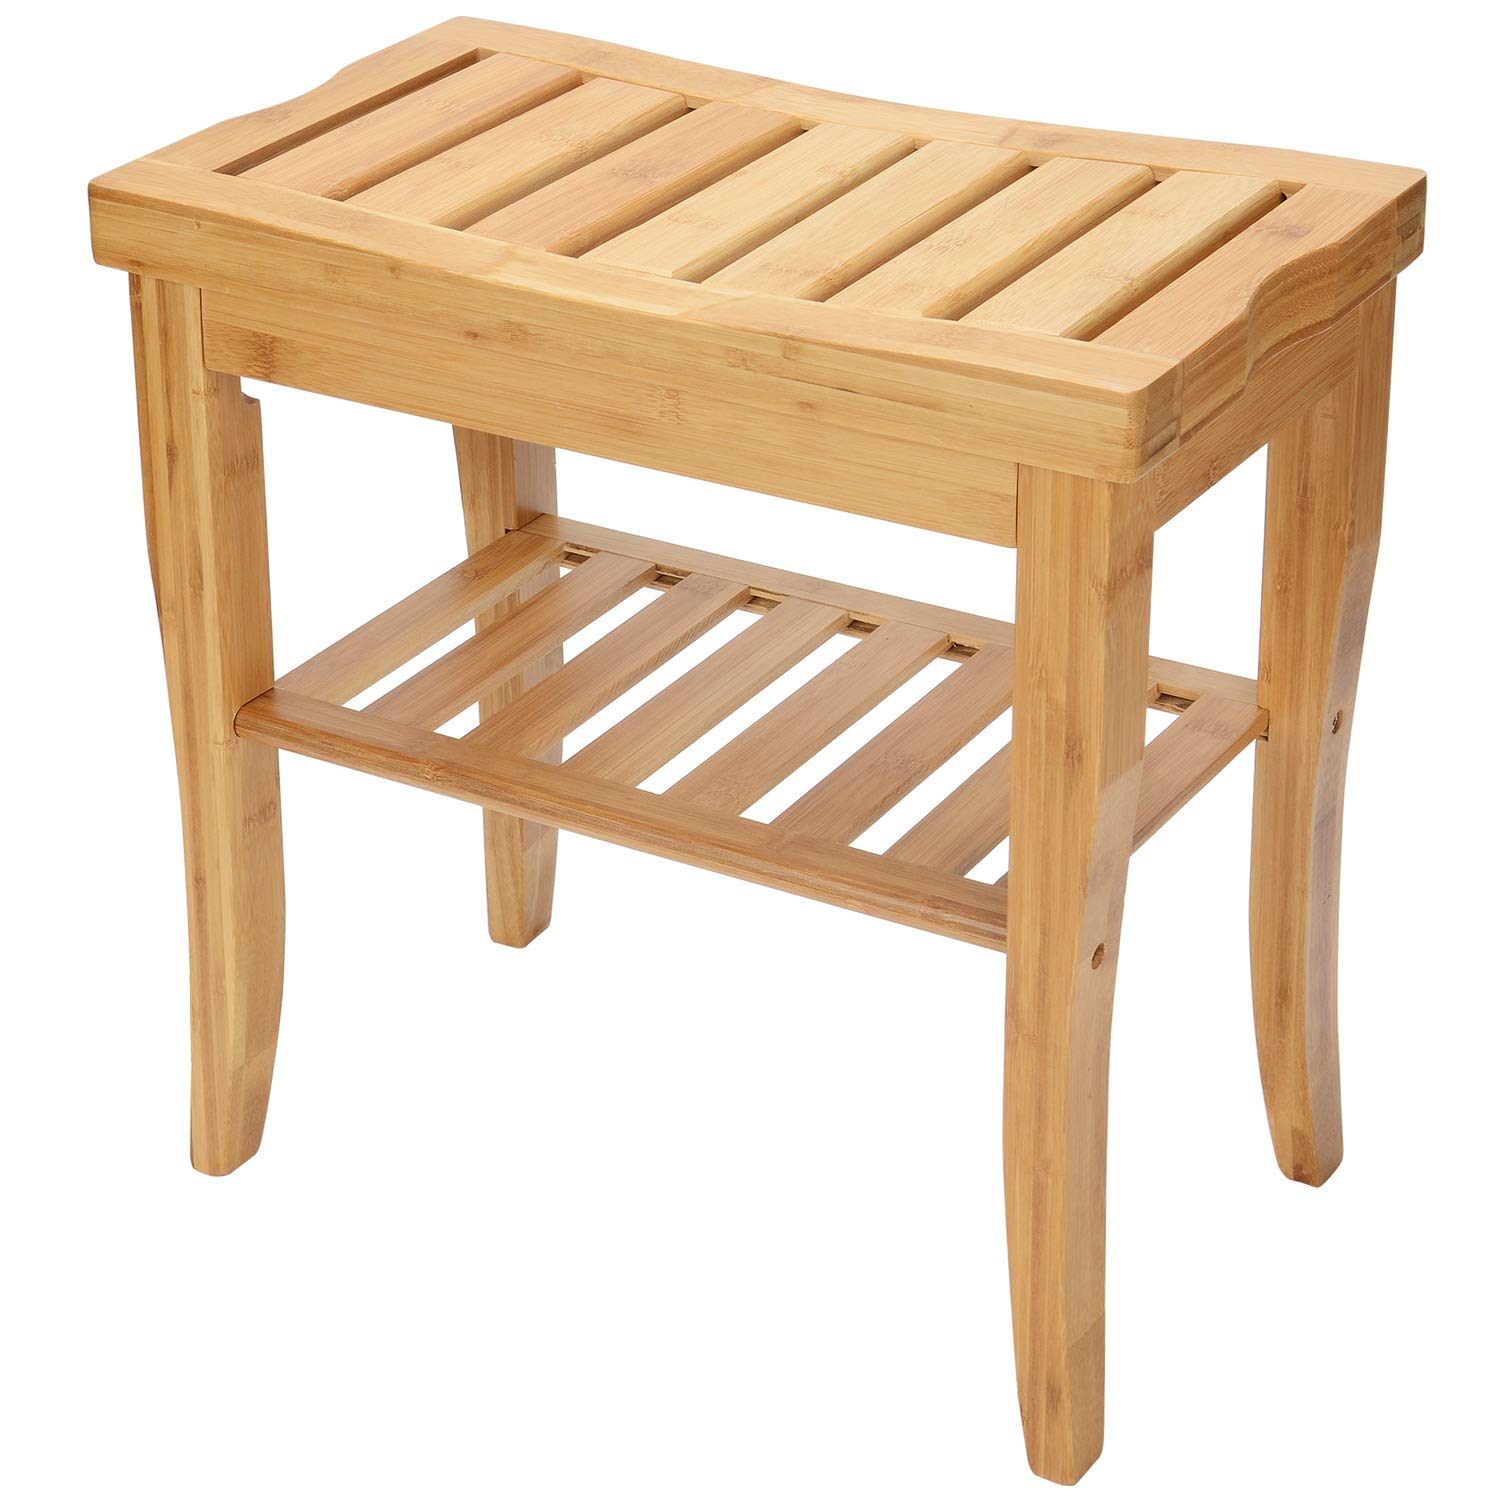 SortWise ® Bamboo Bathroom Shower Bench with Storage Shelf Spa Bath Seat Vanity Stool Chair for Indoor or Outdoor Use